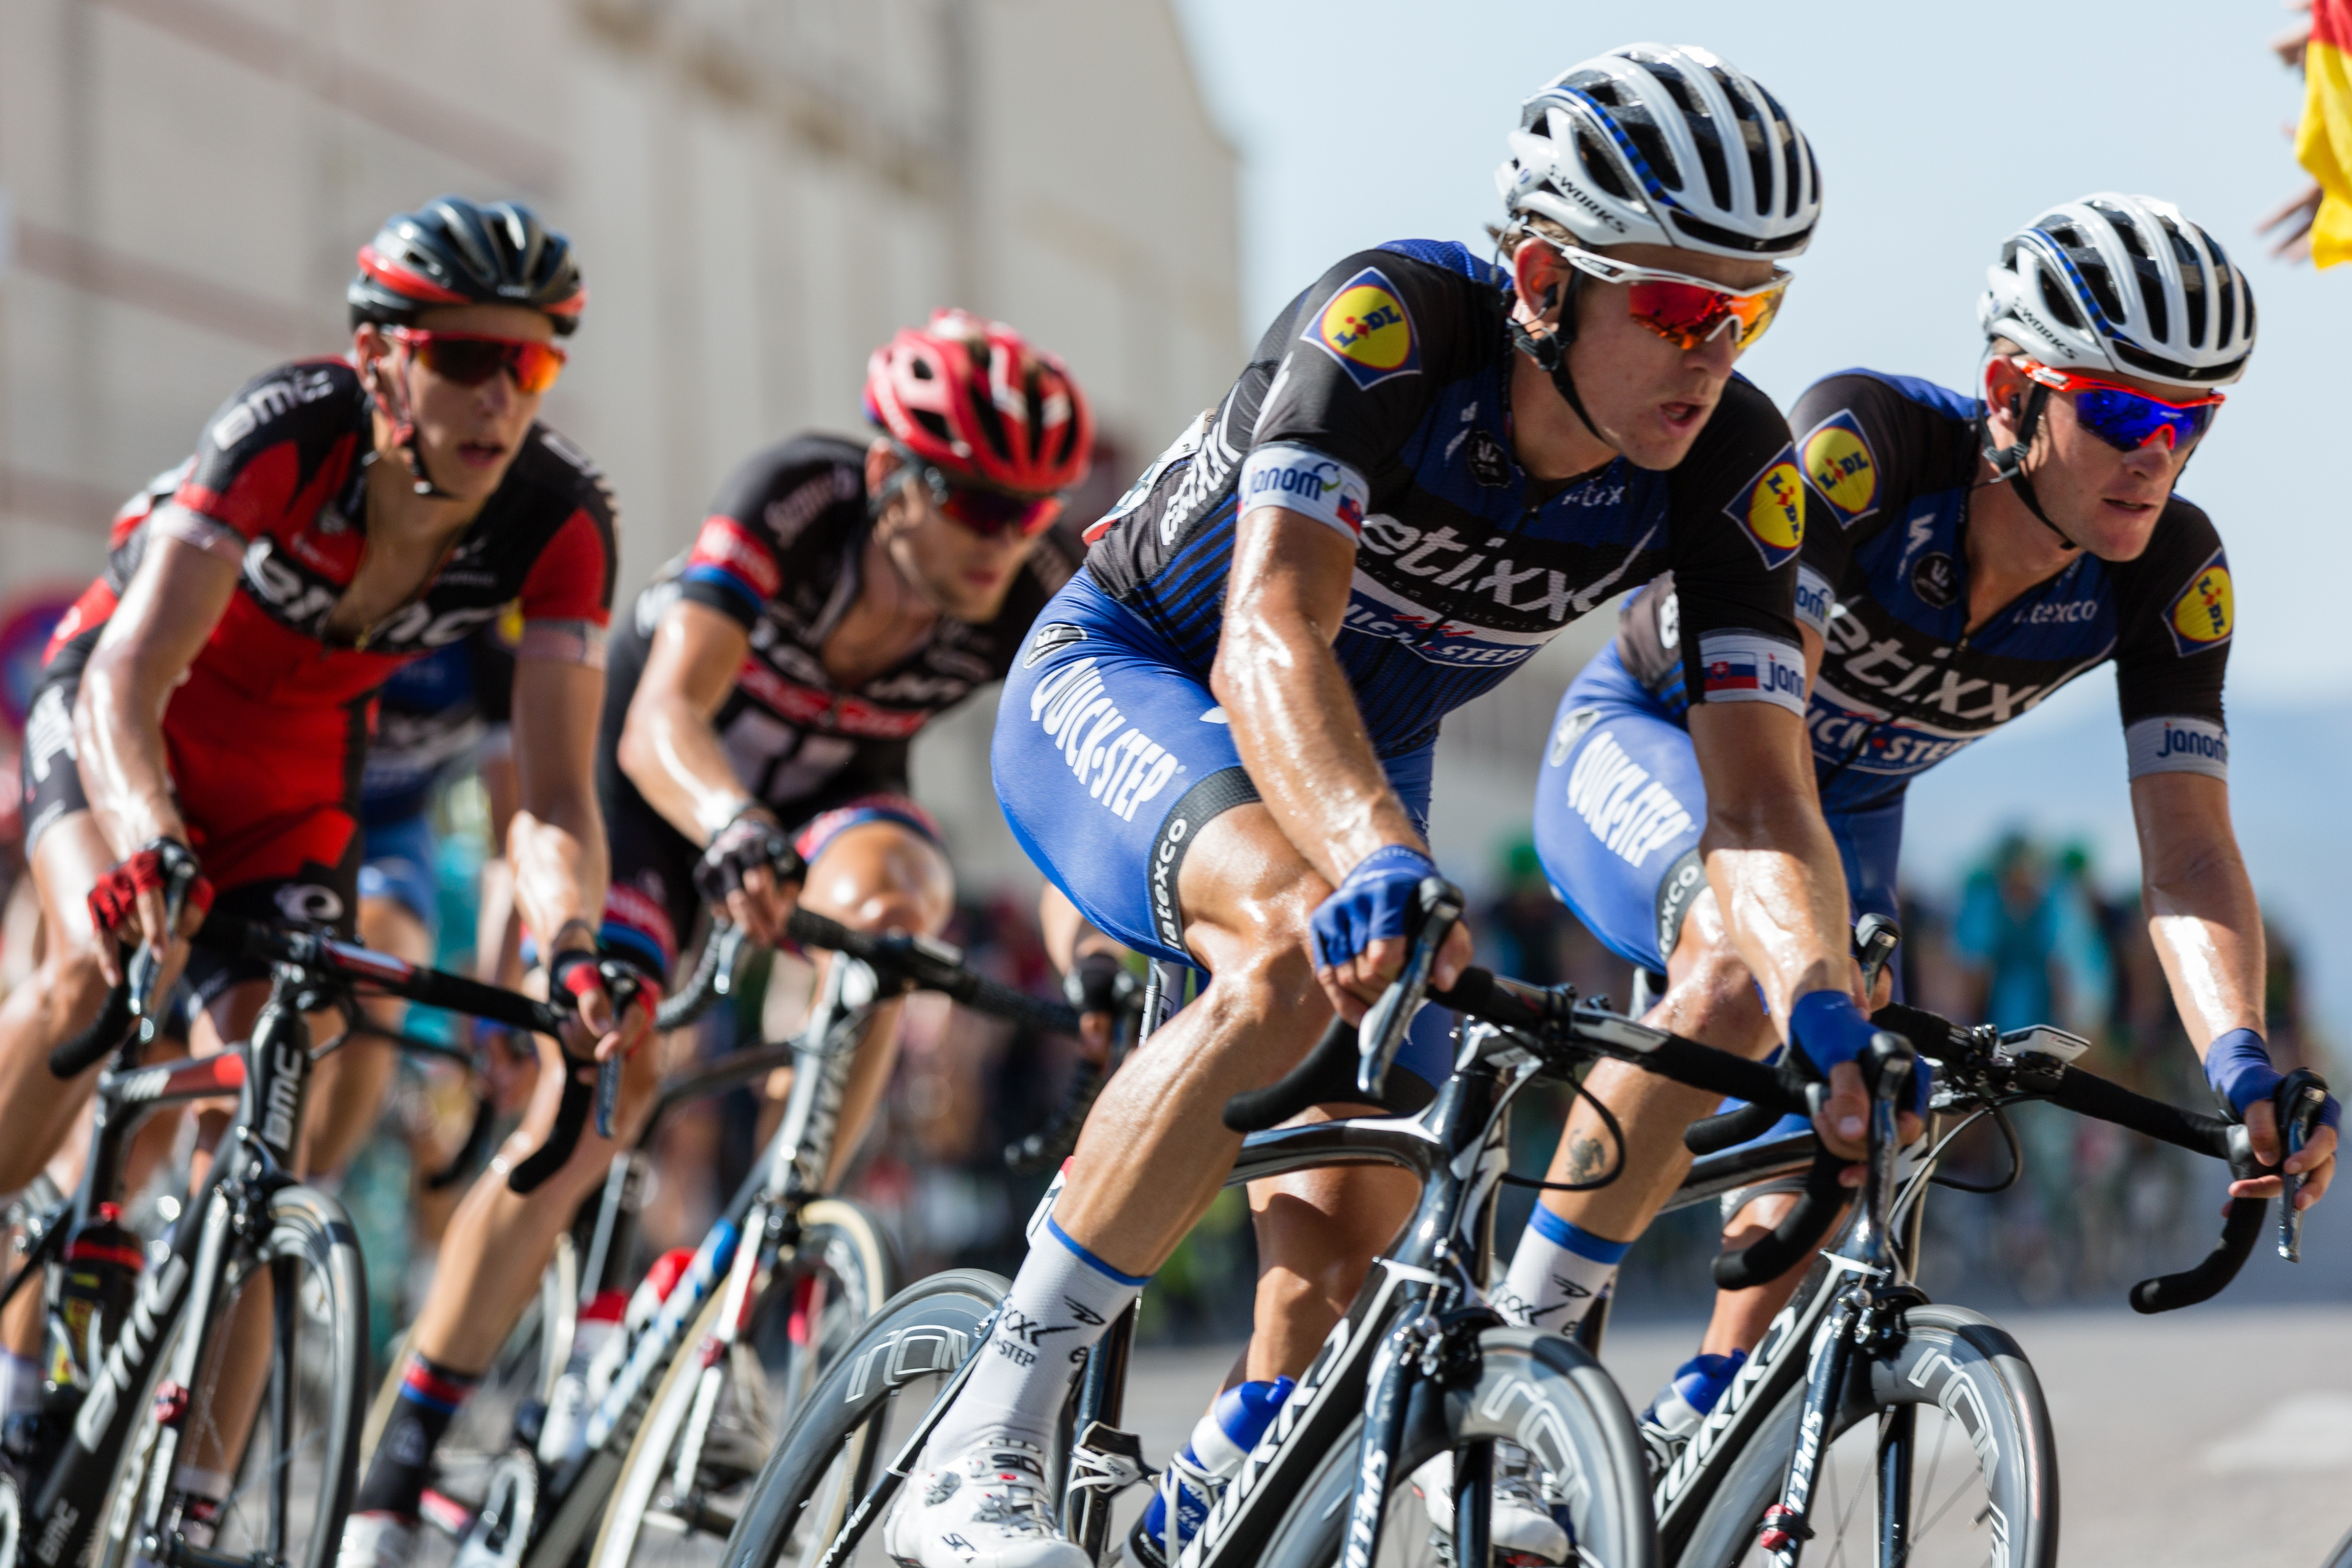 Cyclists in a bicycle race